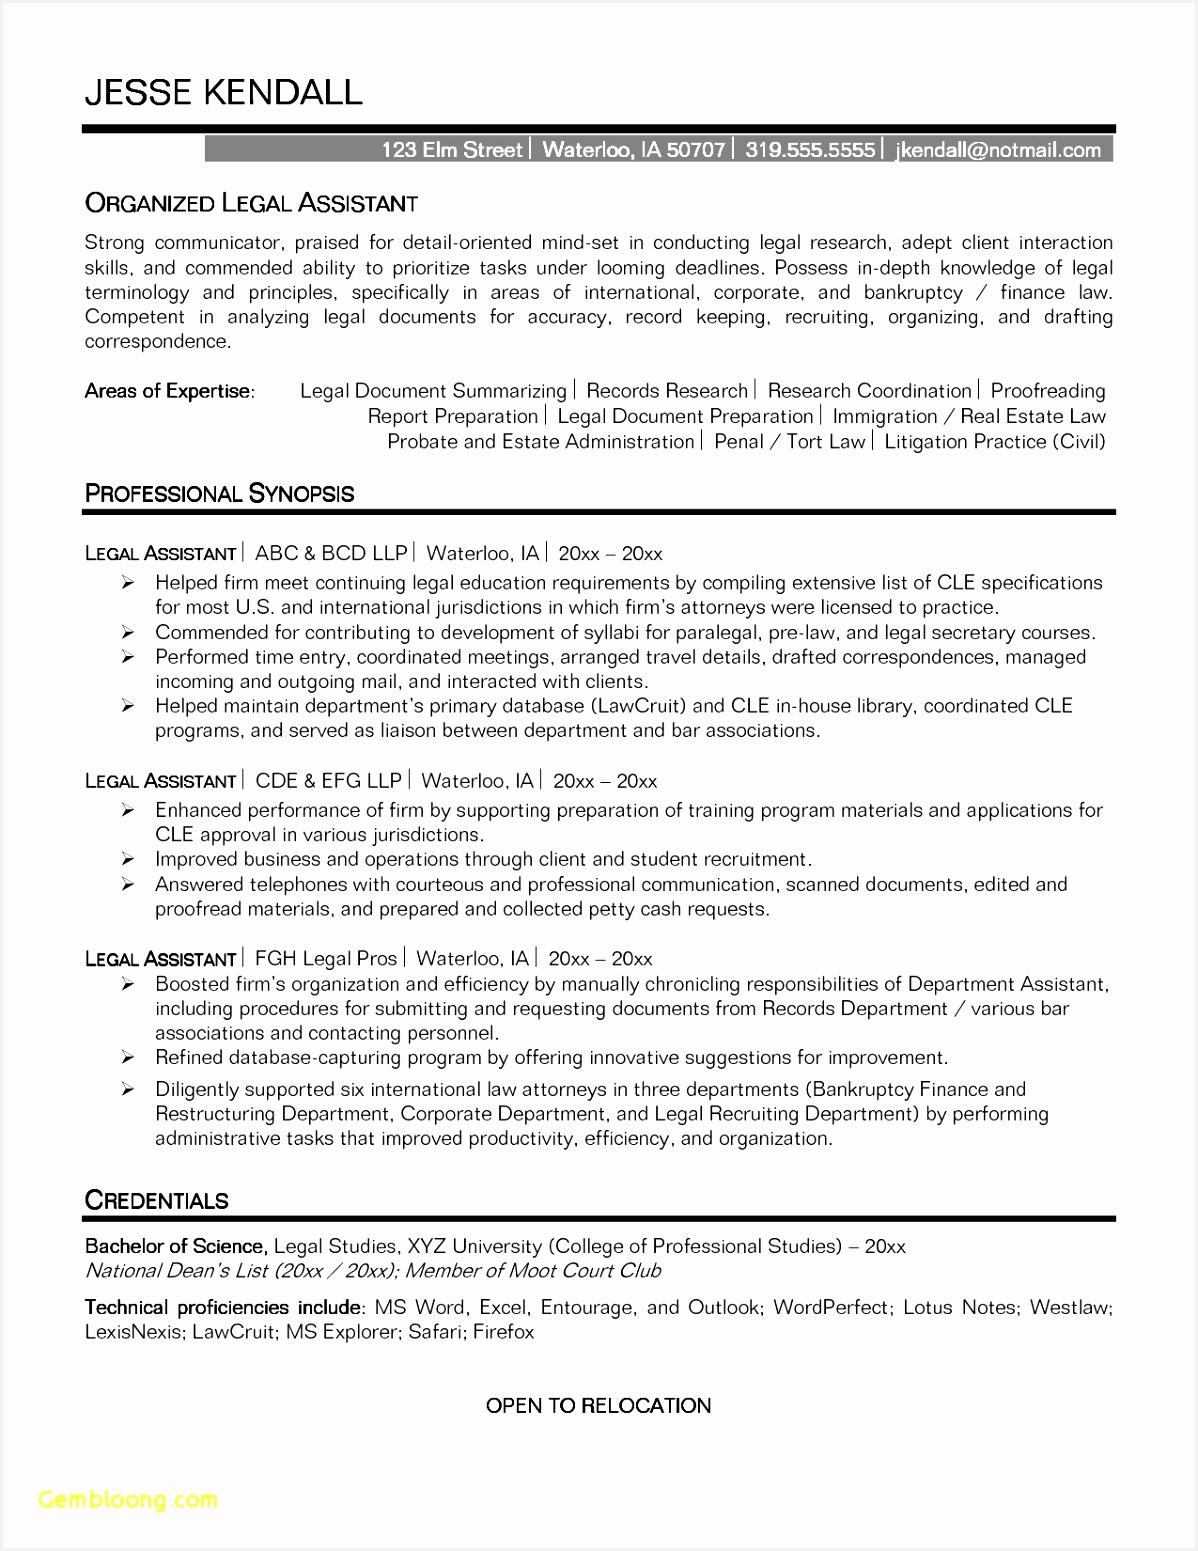 Civil Law attorney Resume Naazf Elegant Legal Resume Template Best attorney Resume Examples Extraordinay Of 7 Civil Law attorney Resume